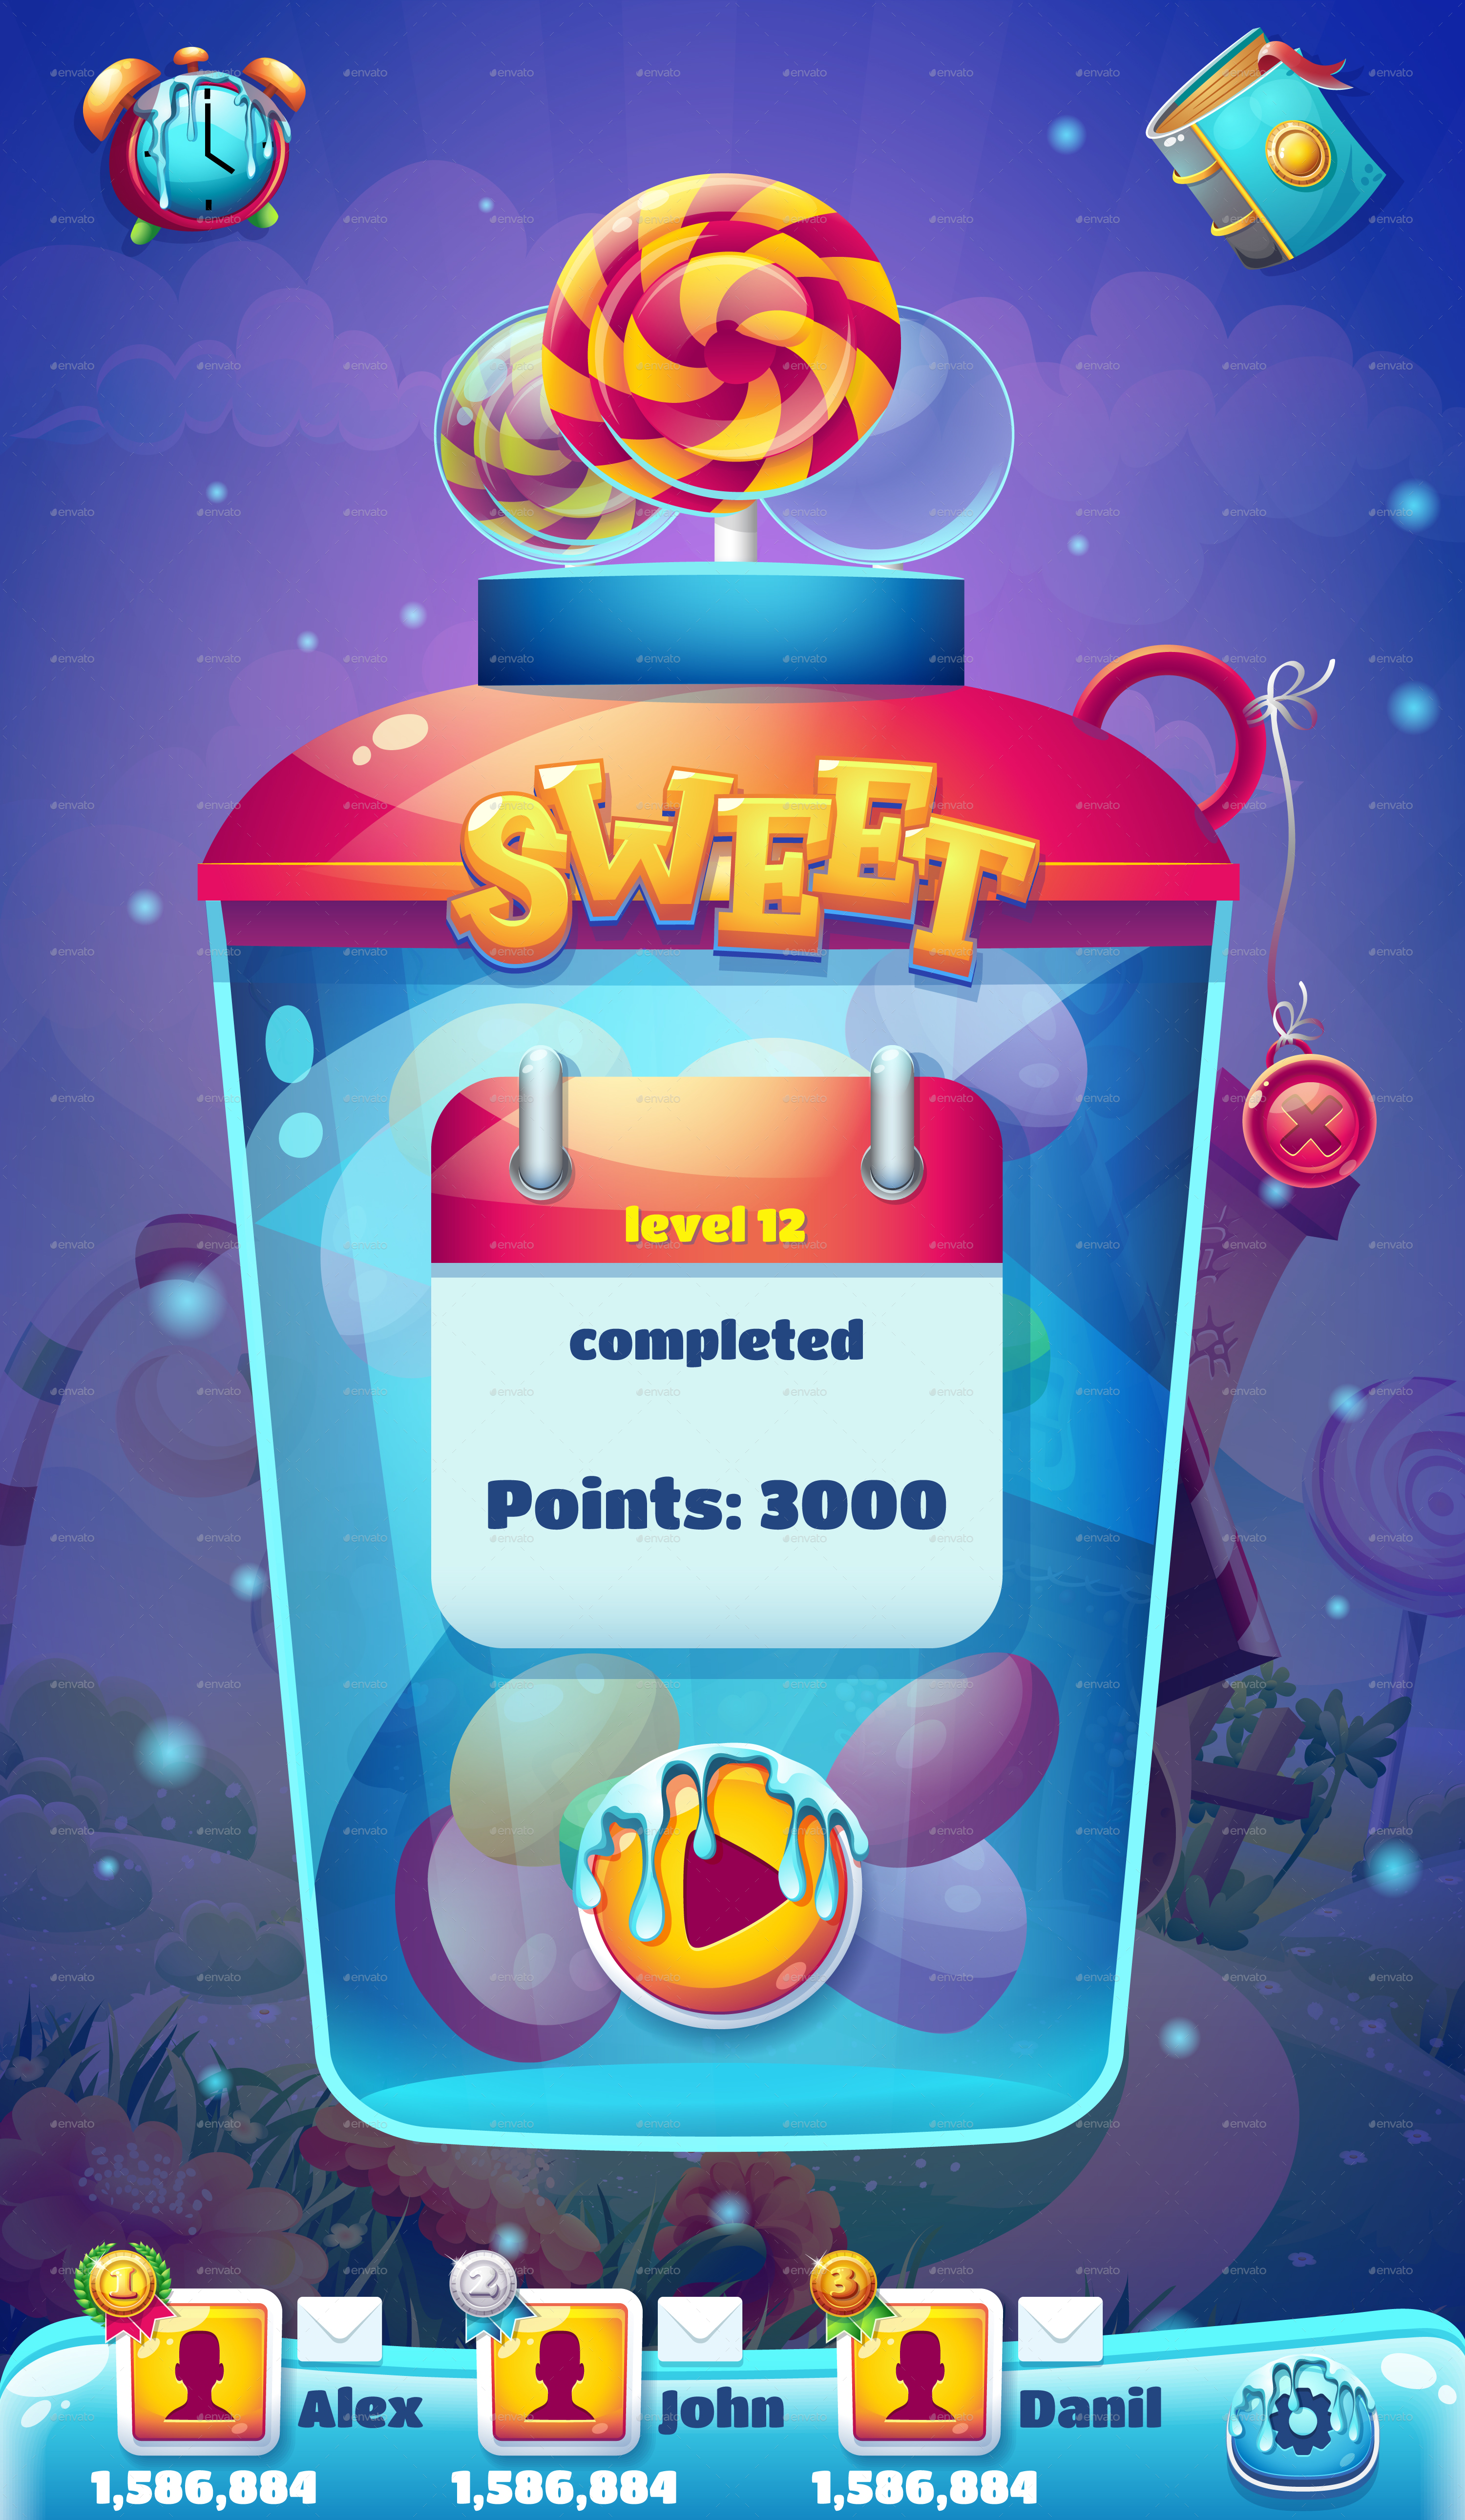 Sweet world mobile gui pack 01 by nearbirds graphicriver world mobile gui level completed screen for video web games g gumiabroncs Choice Image